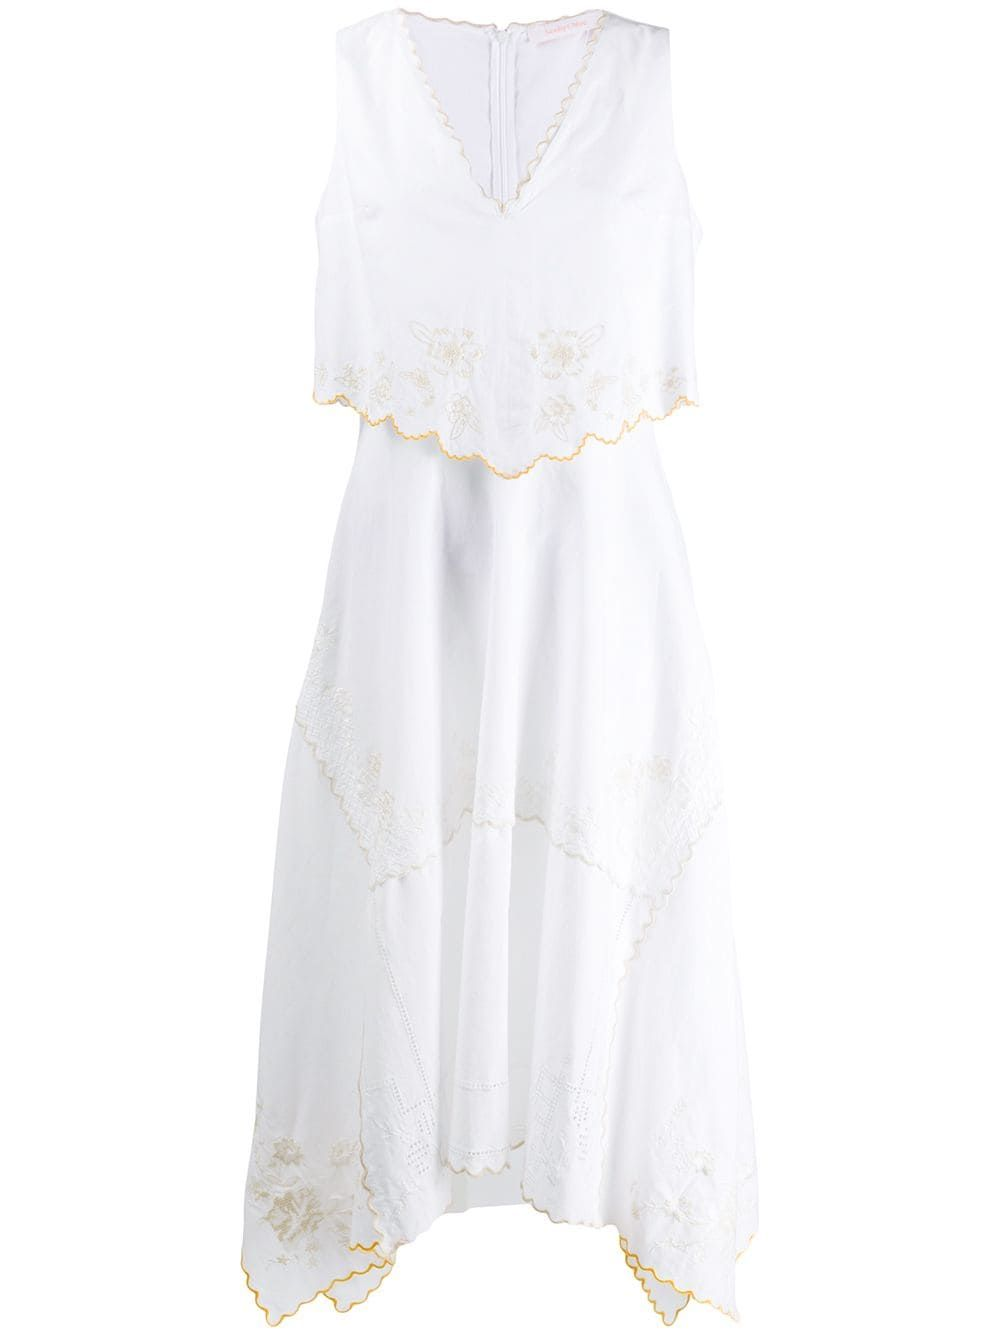 See By Chloe Besticktes Kleid Weiss Embroidered Dress Dresses See By Chloe [ 1334 x 1000 Pixel ]